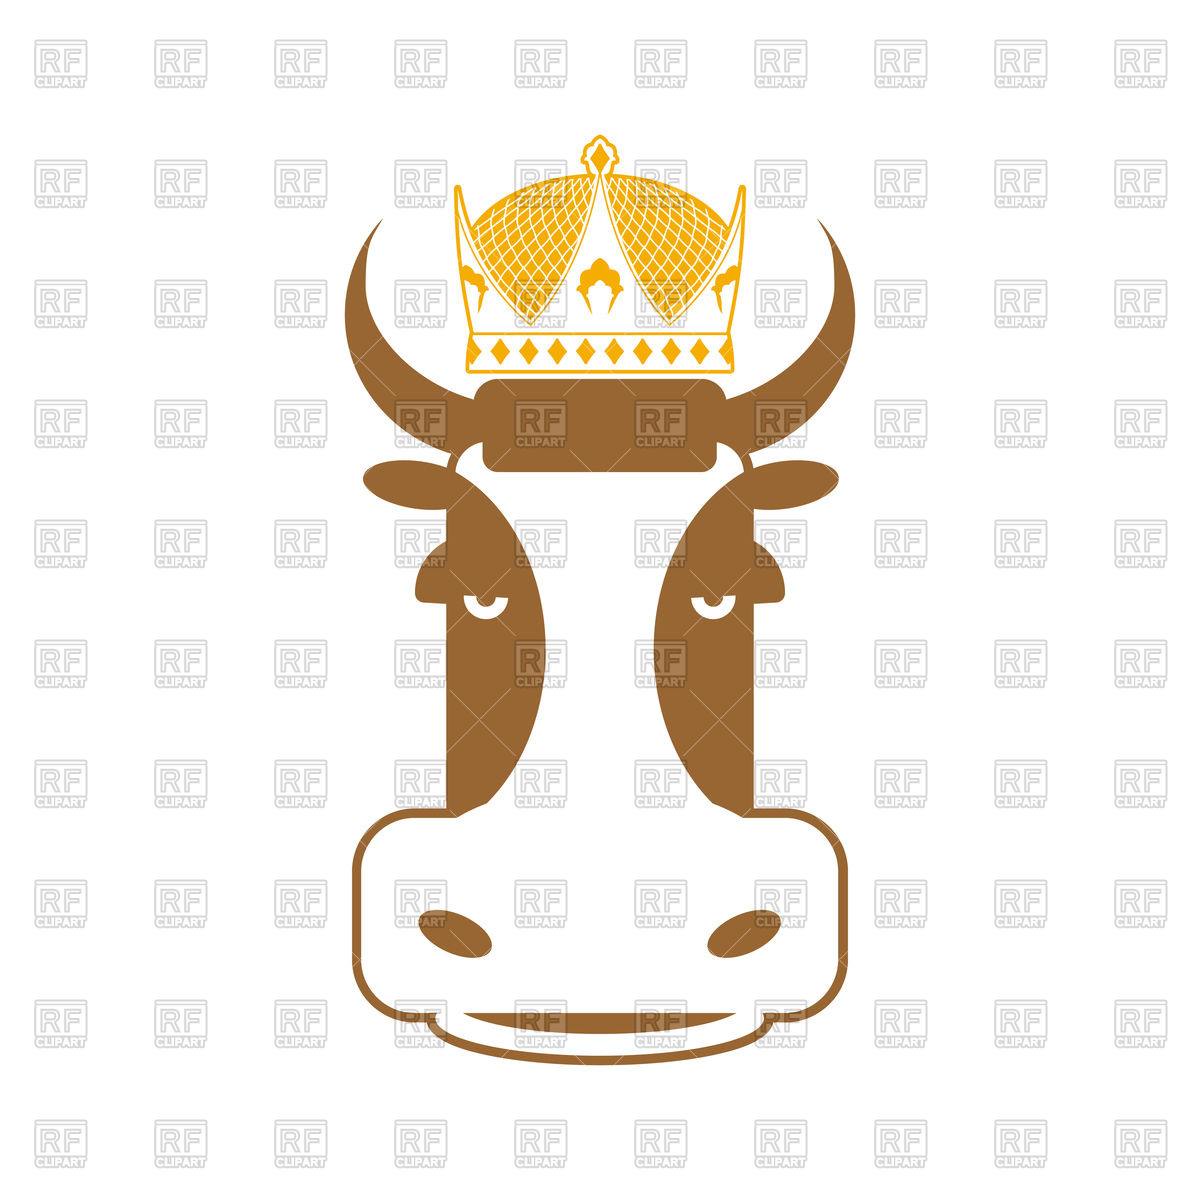 1200x1200 Royal Beef. Cow In Crown. Sign For Meat Production Royalty Free